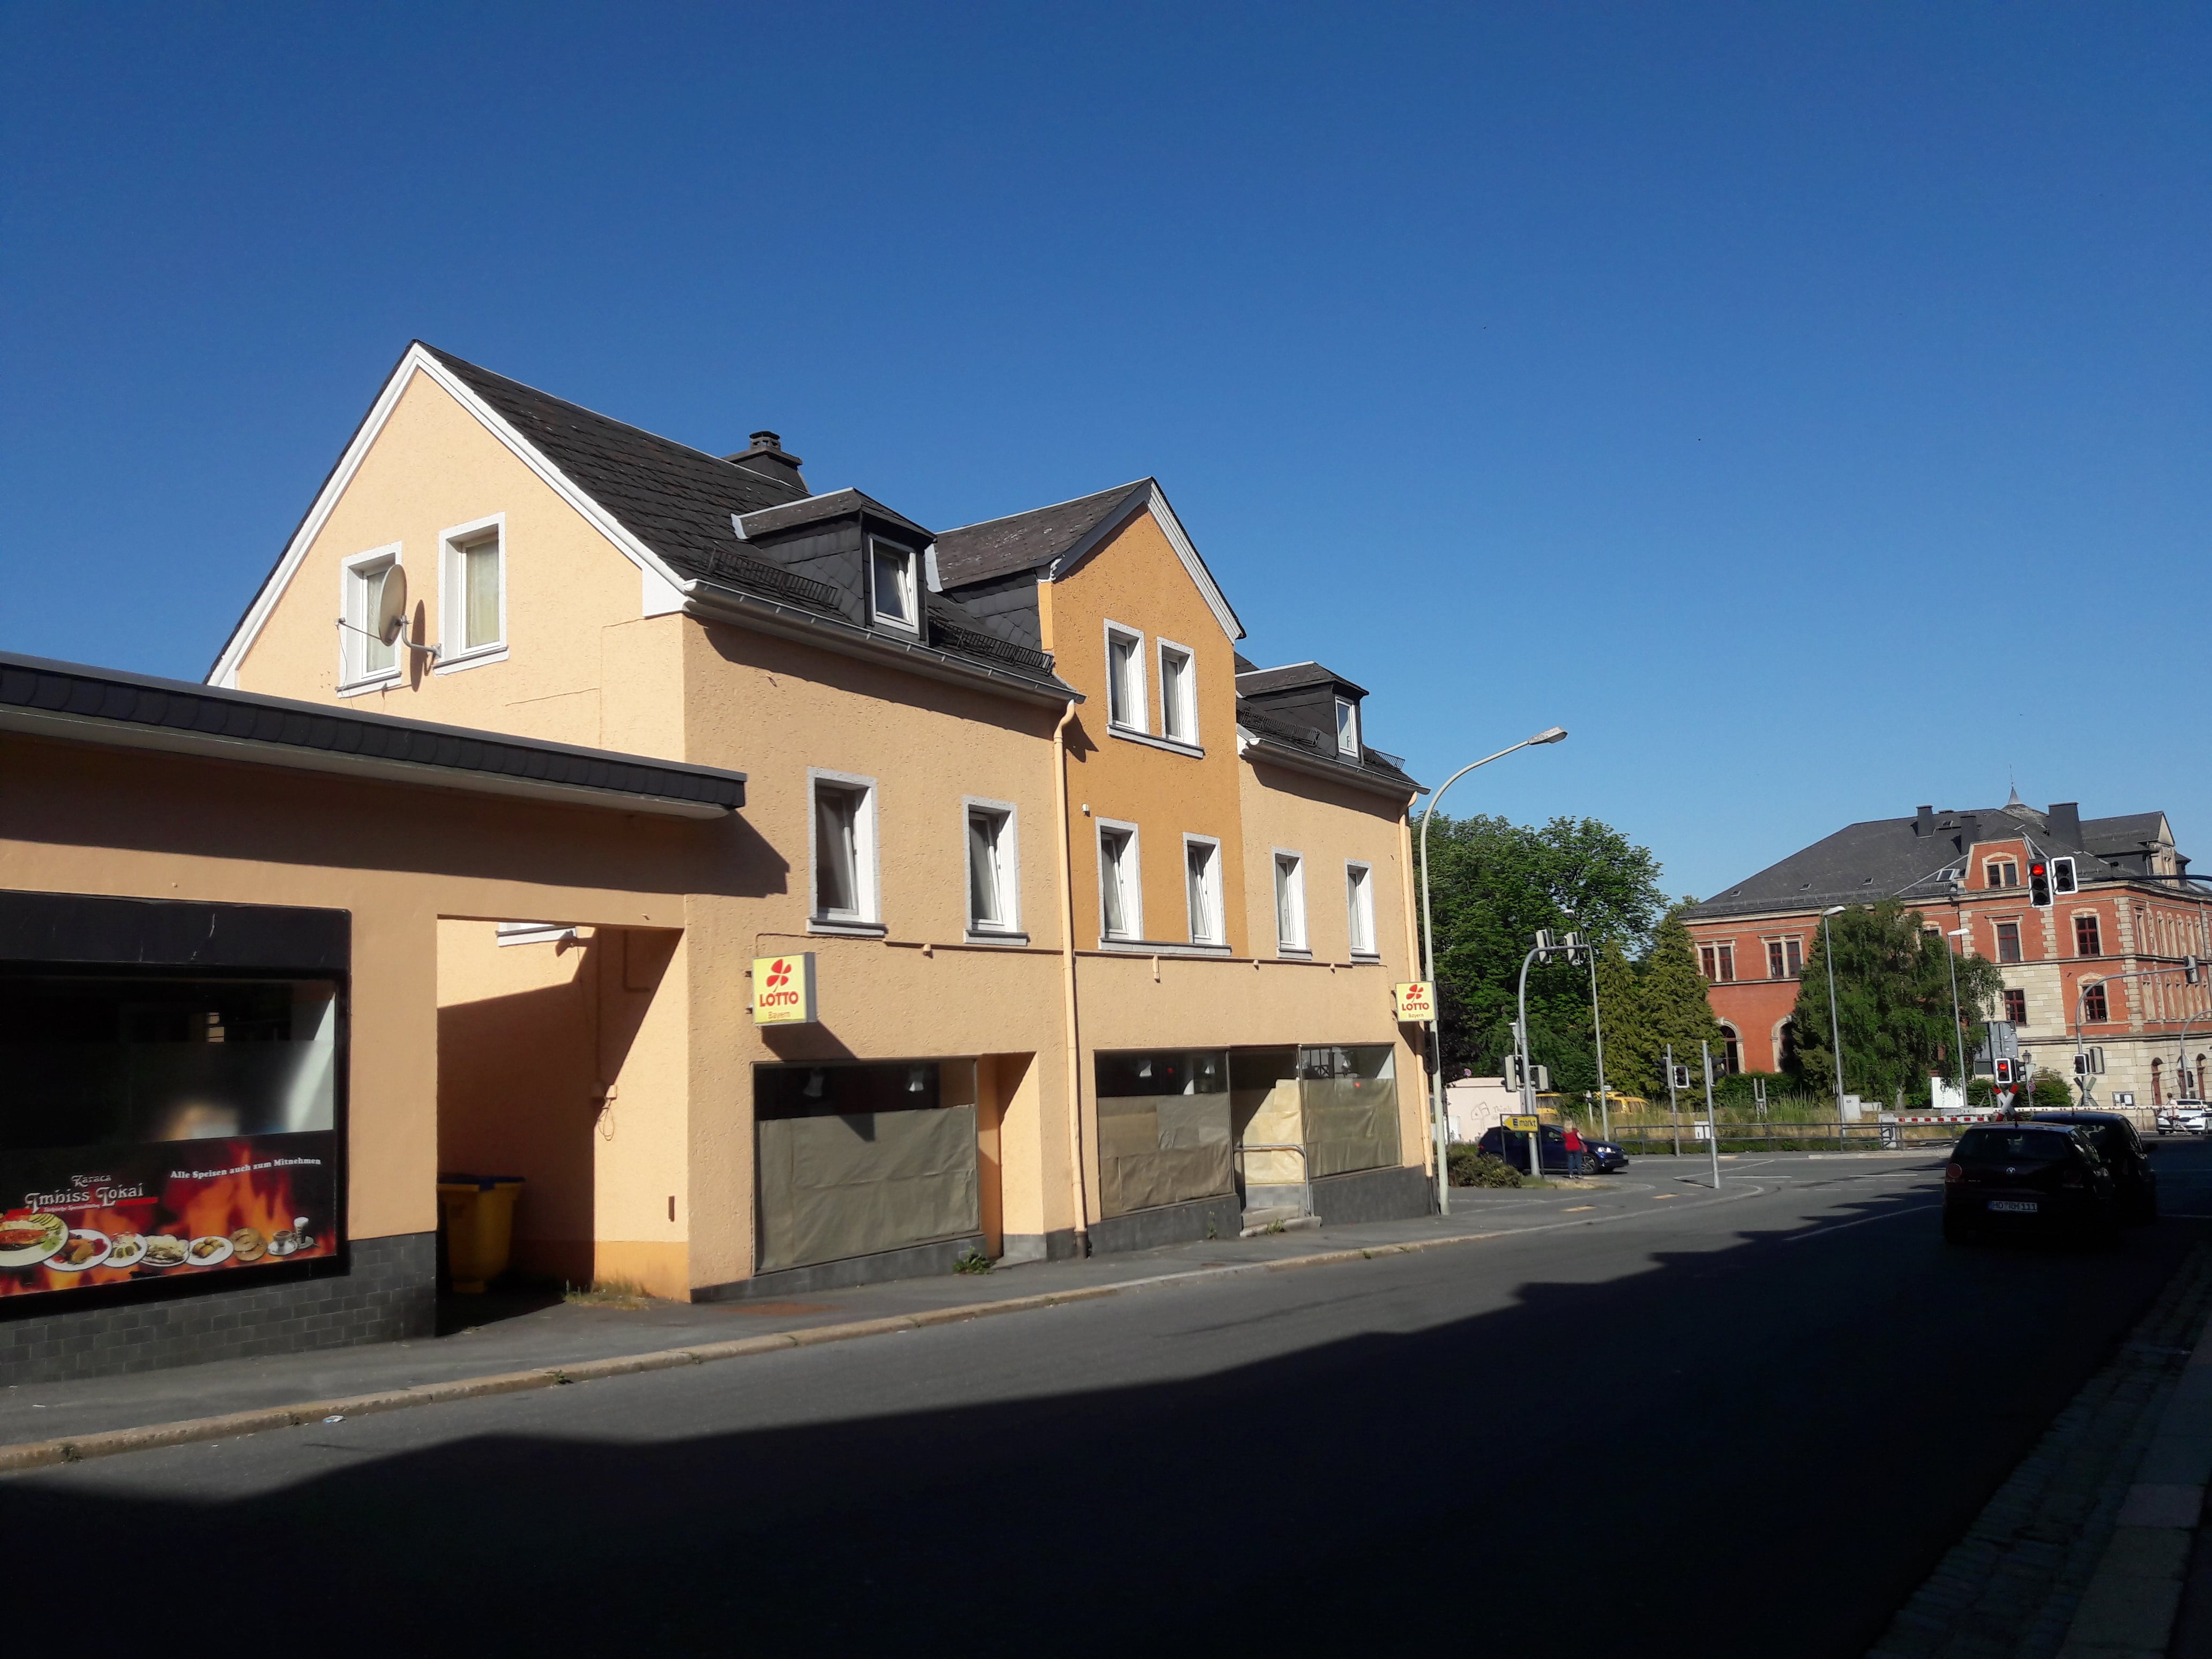 August_Bebel_Straße_2(2)-min.jpg